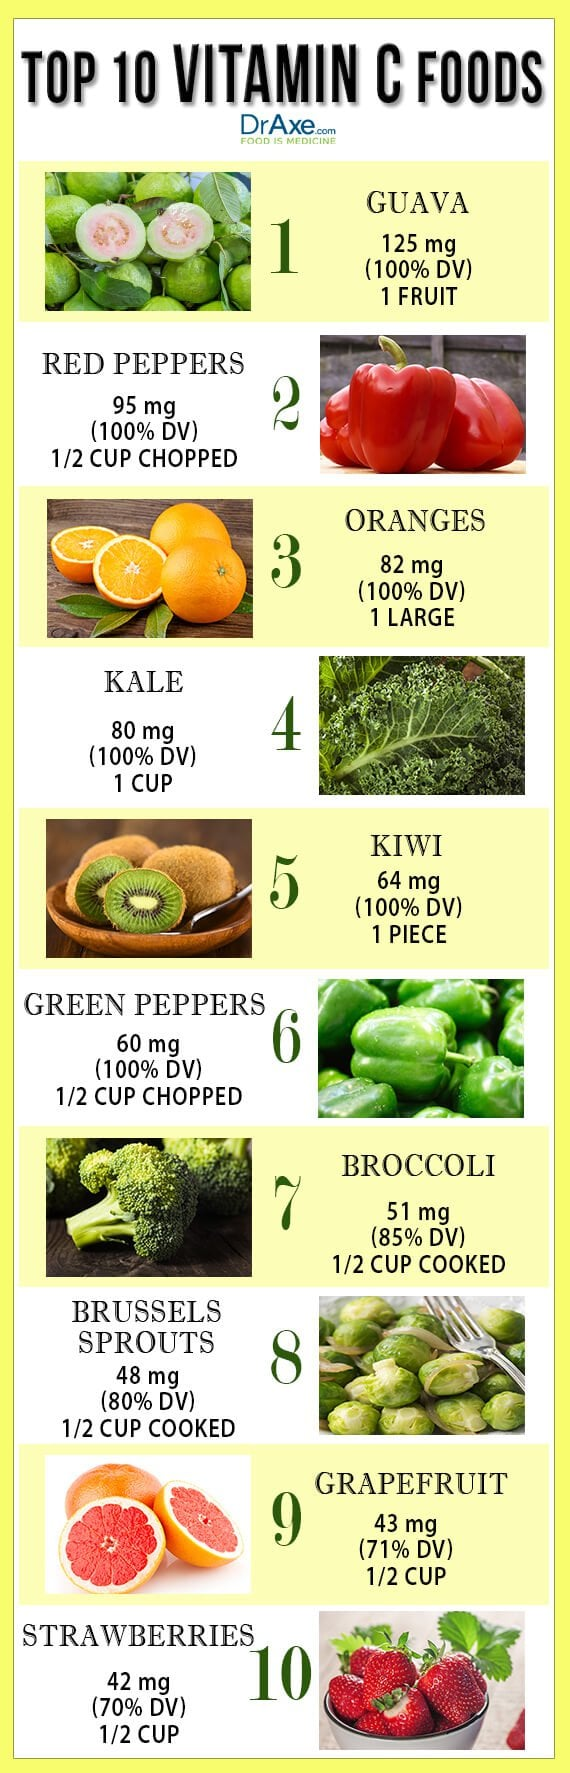 How To Get Lighter Brown Eyes Naturally with Have a Vitamin C Rich Diet